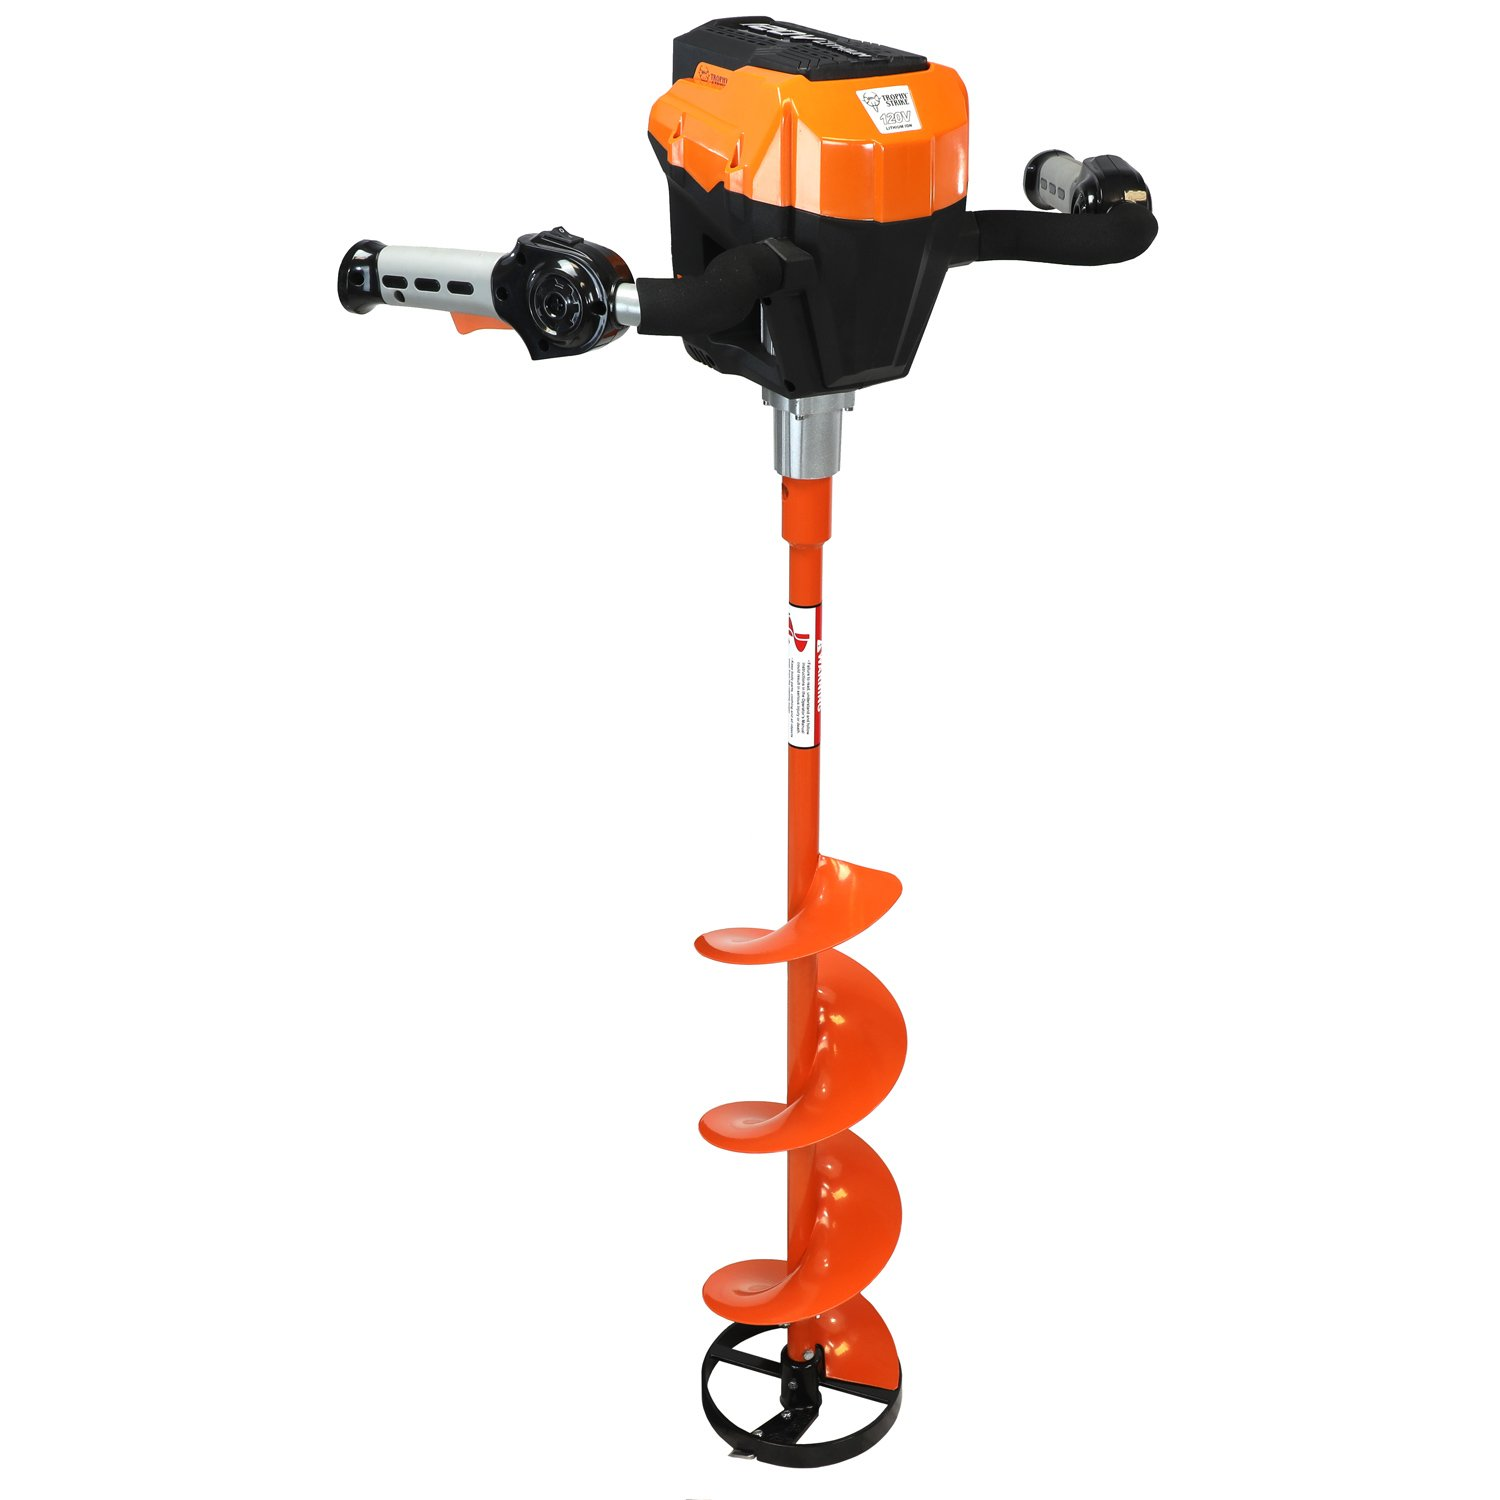 Trophy Strike 120V Ice Auger 2017 Version 120V Lithium Ion Battery Ice Auger - Everything You Need to Start Drilling! by Trophy Strike